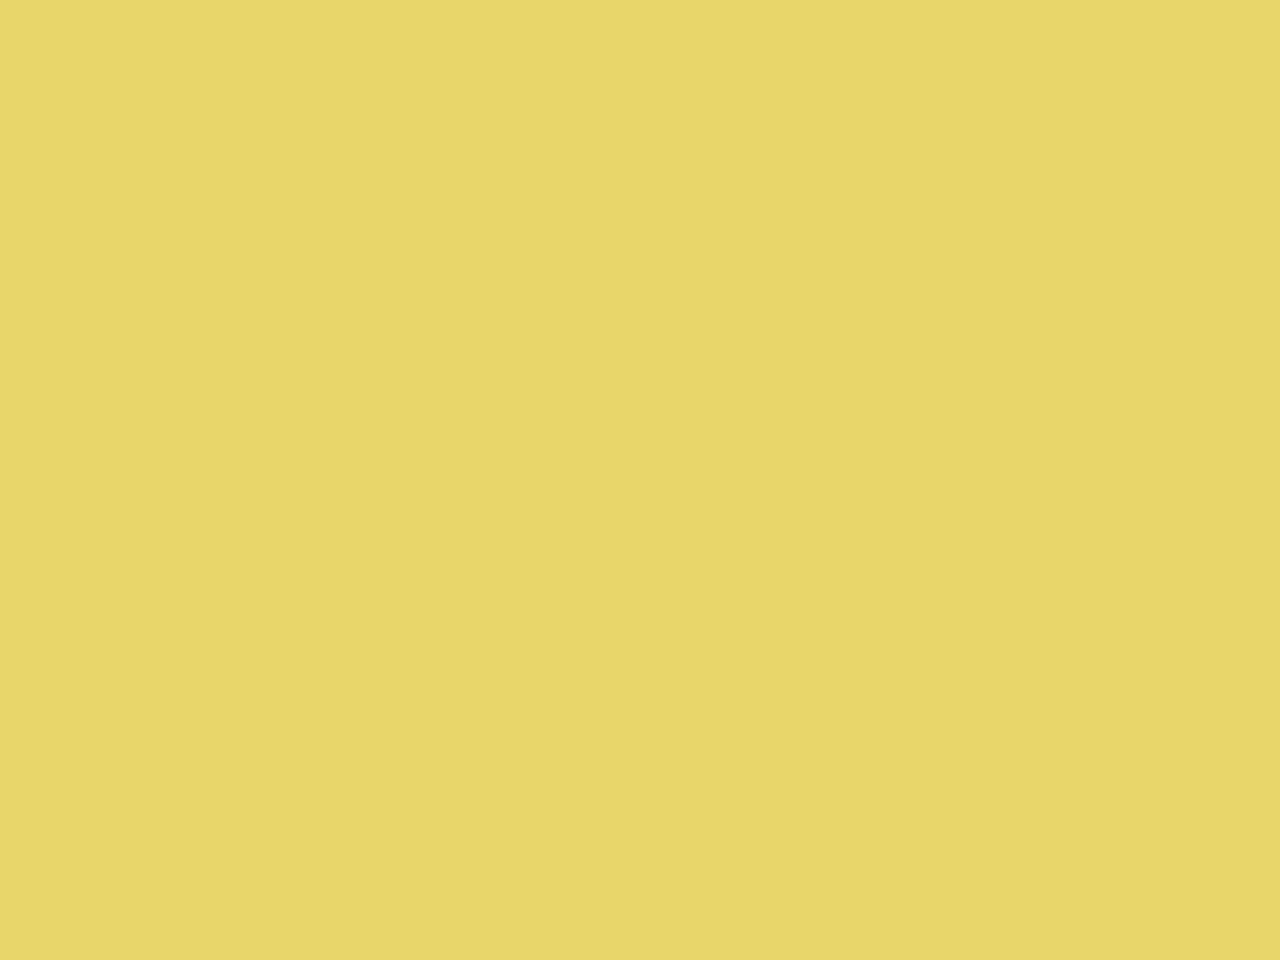 1280x960 Hansa Yellow Solid Color Background